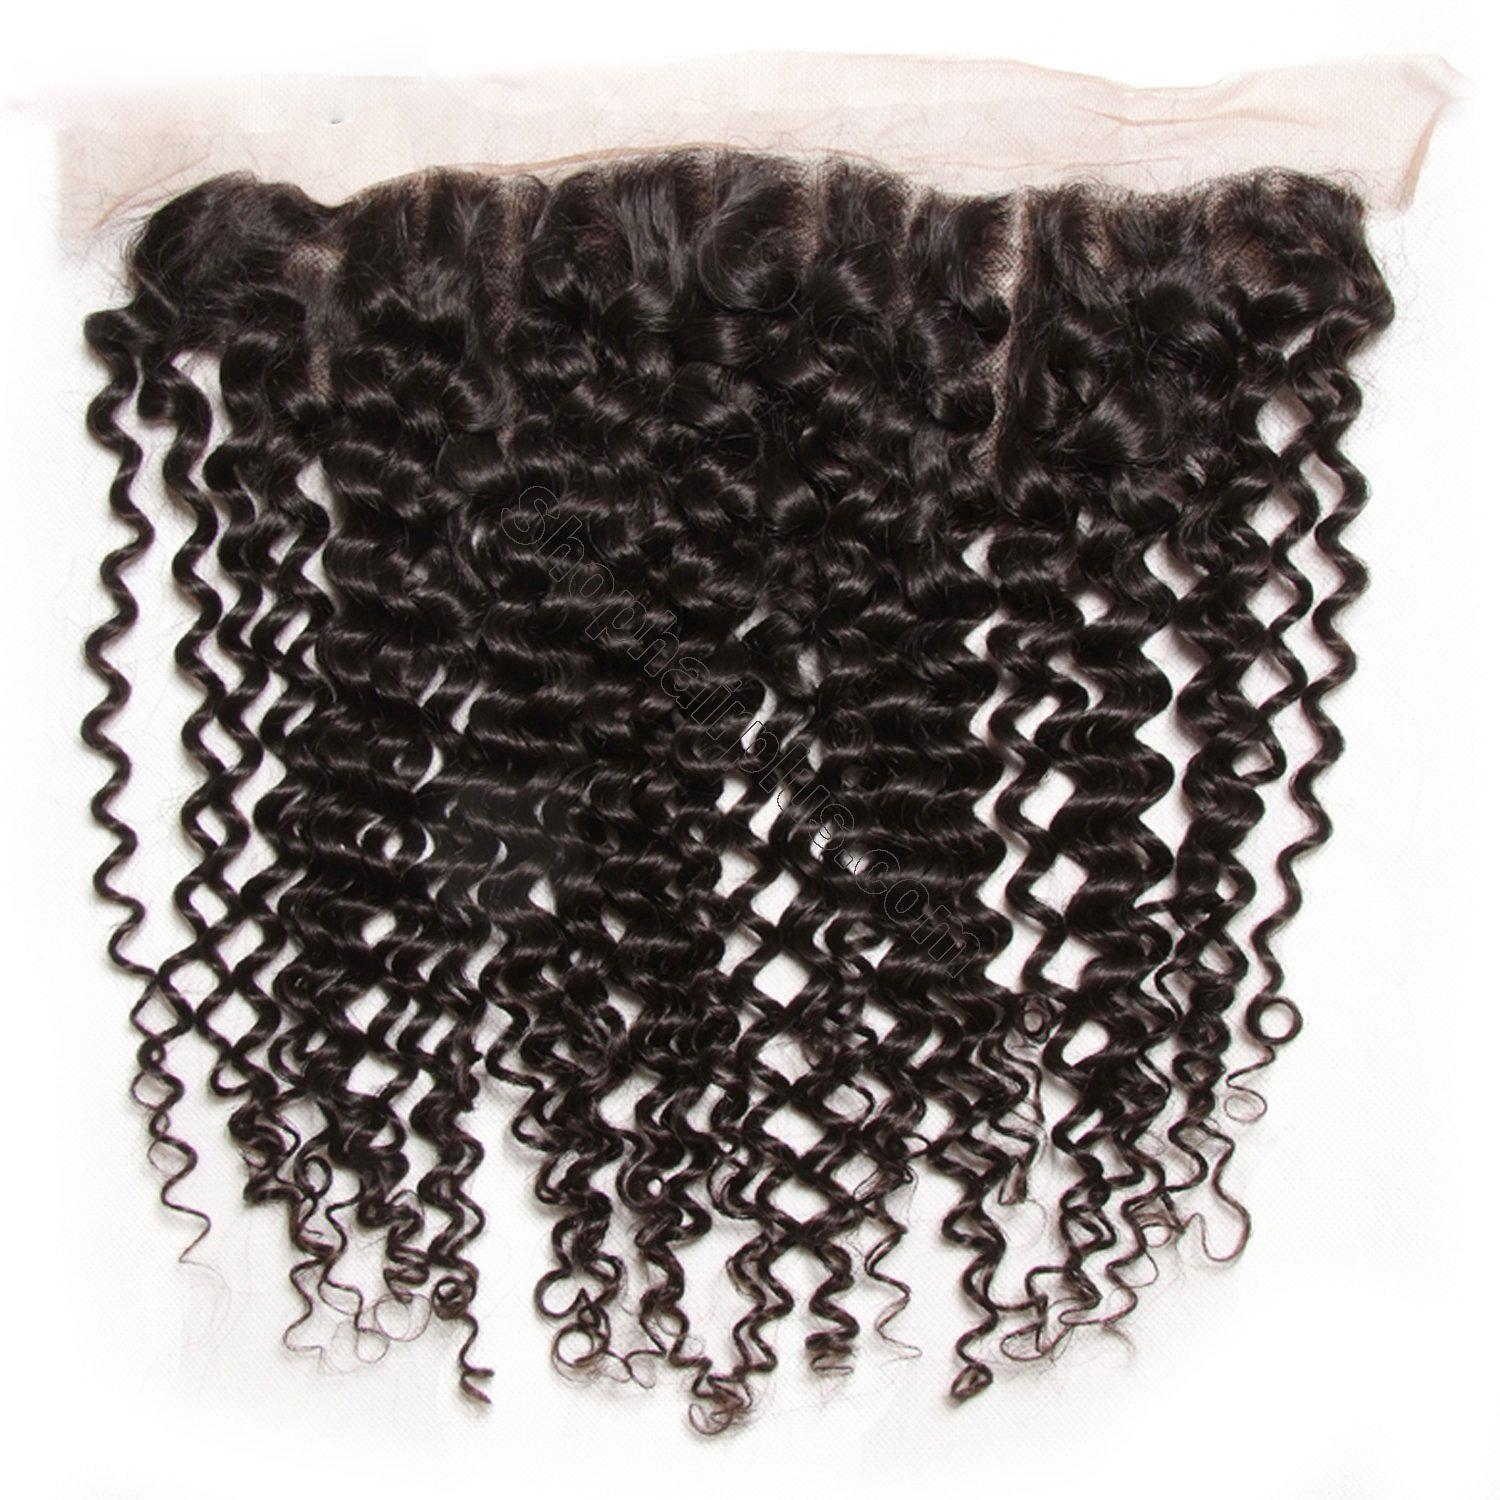 Brazilian Curly Hair 13x4 Lace Frontal With Bundles 3Pcs/Pack 4